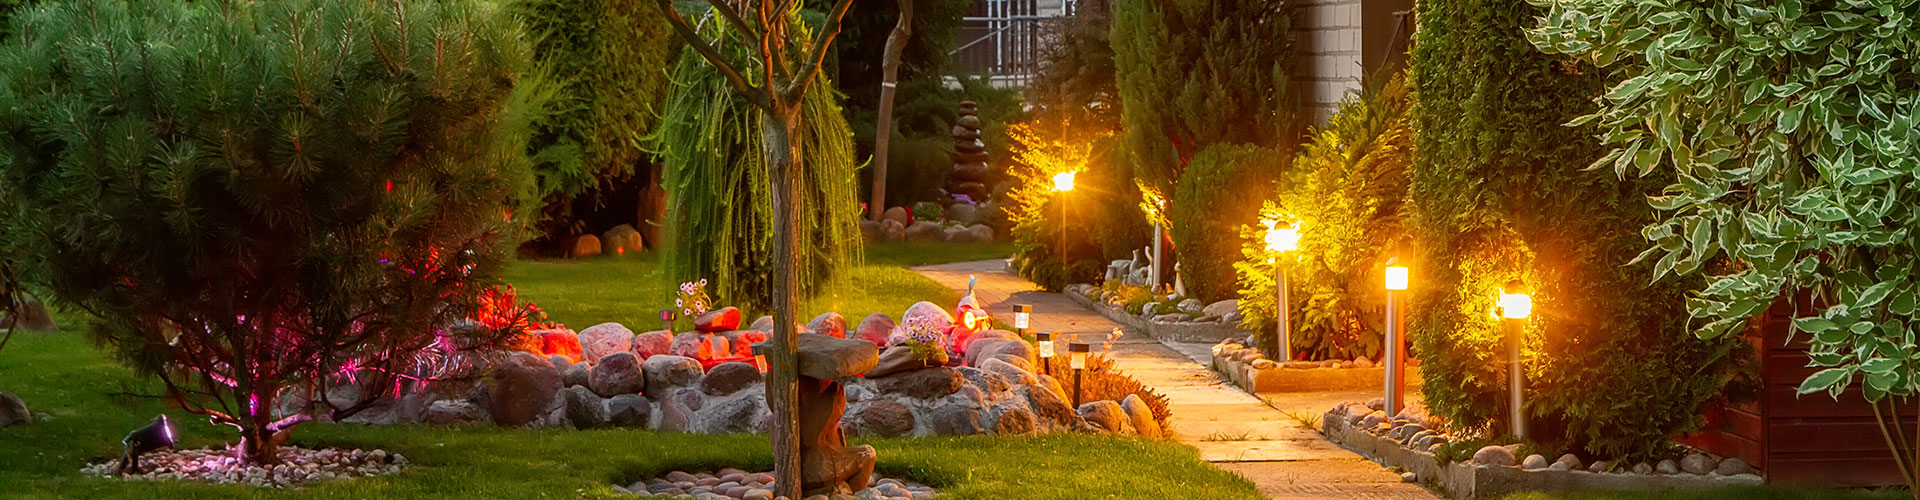 evening view of a manicured garden with outdoor lighting